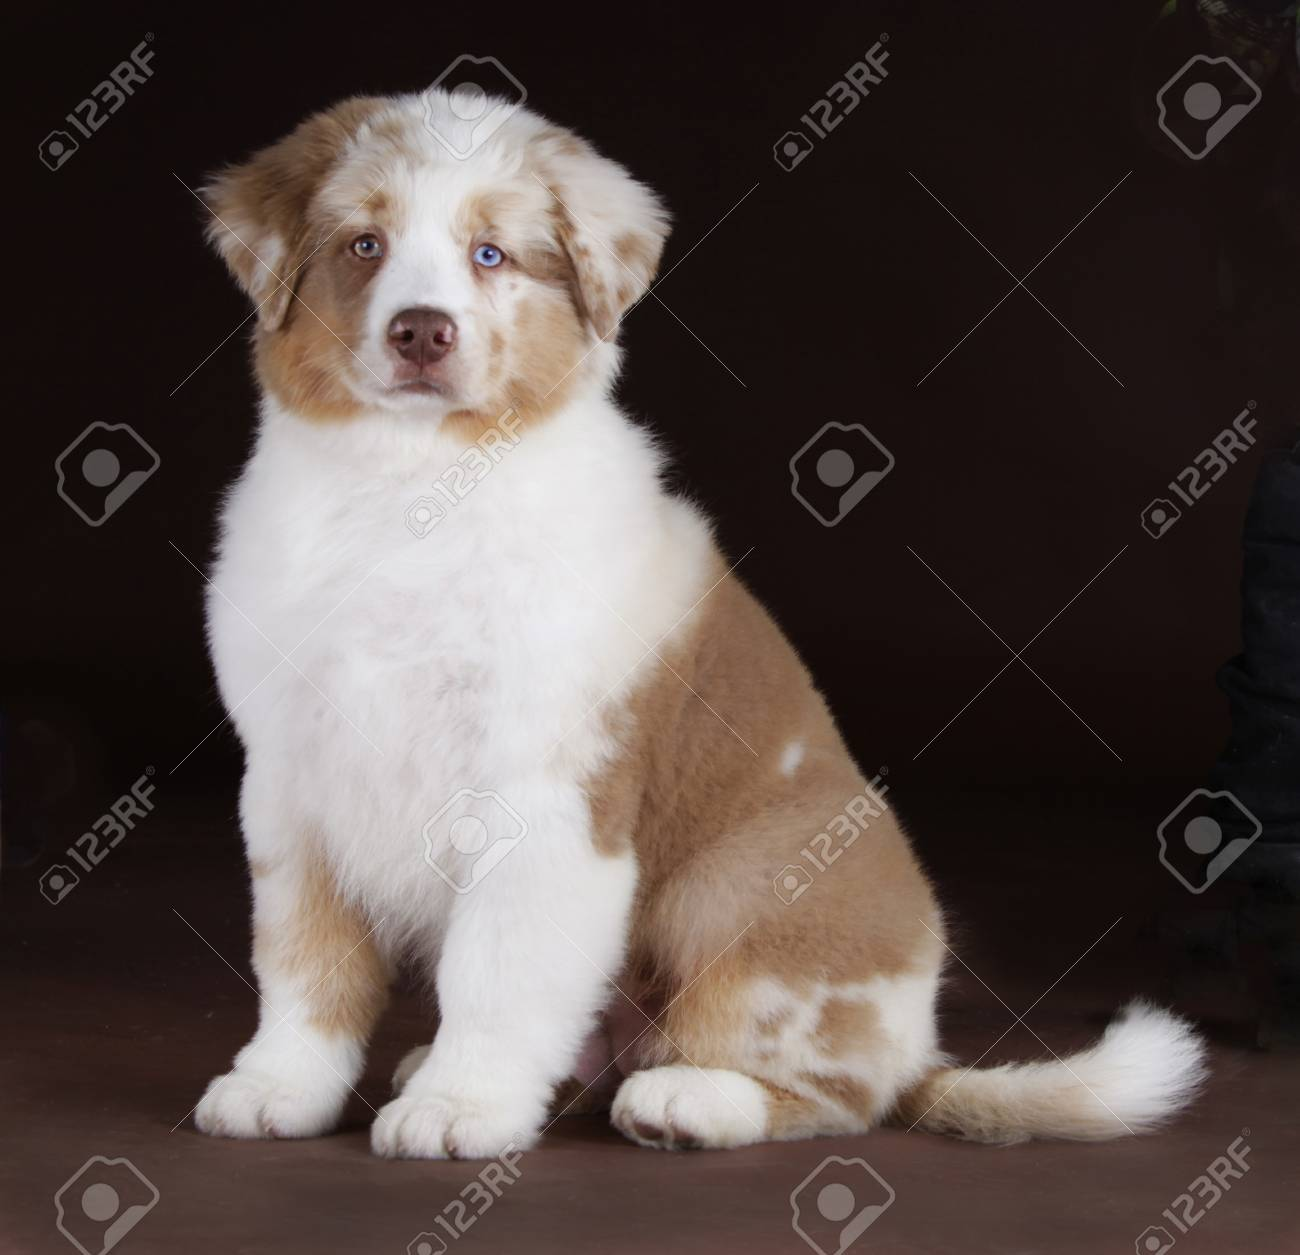 Australian Shepherd Dog With Blue And Brown Eyes In Studio Stock Photo Picture And Royalty Free Image Image 68653061